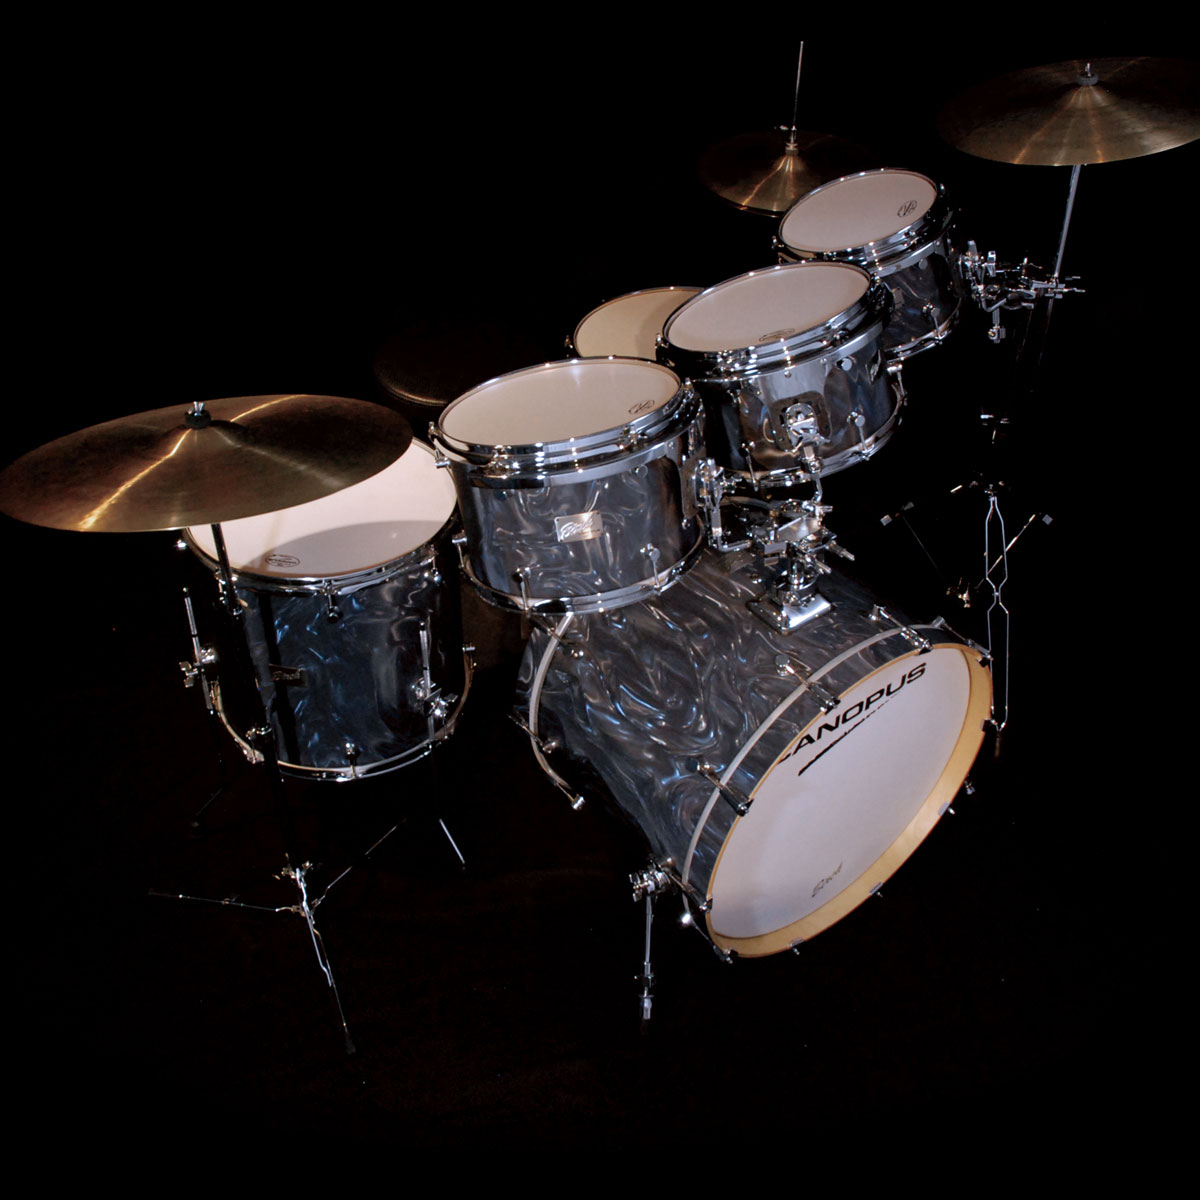 Birch Series Canopus Drums